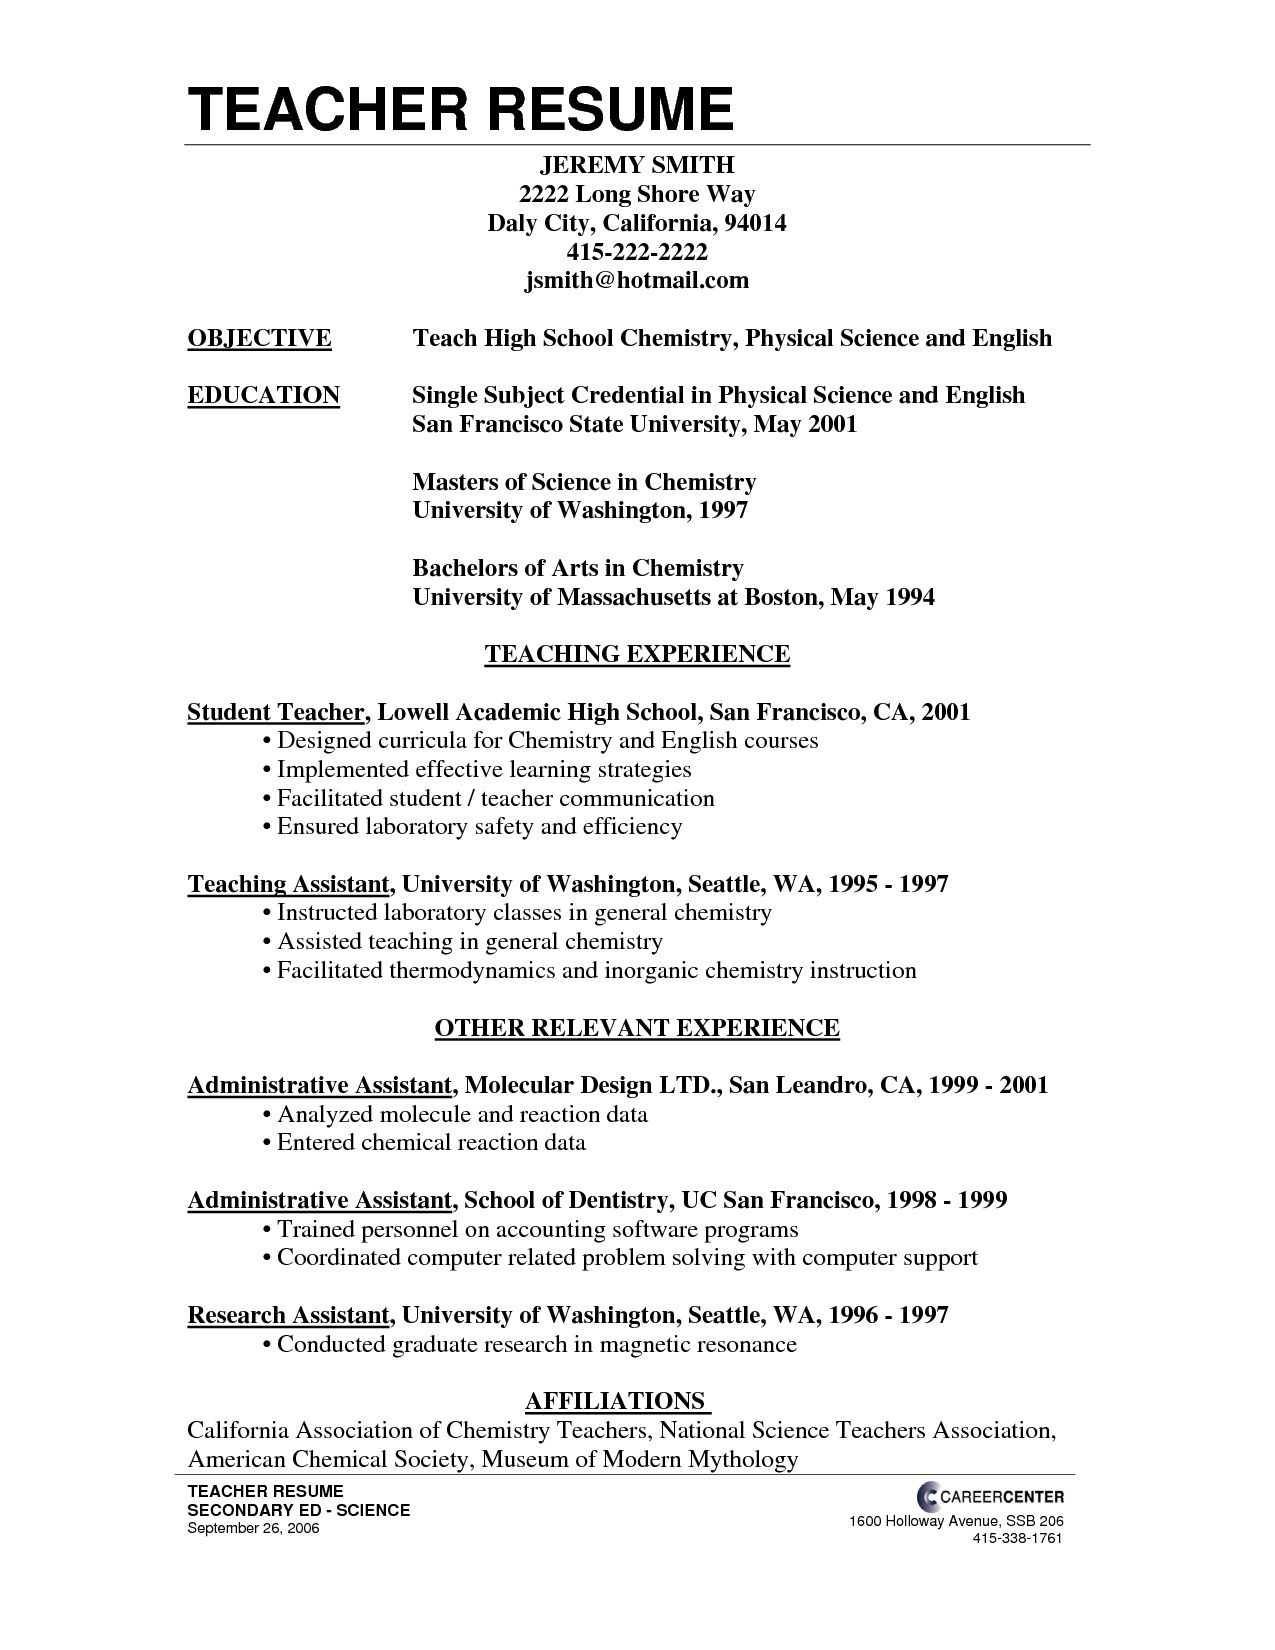 High School Teacher Resume - http://jobresumesample.com/547/high